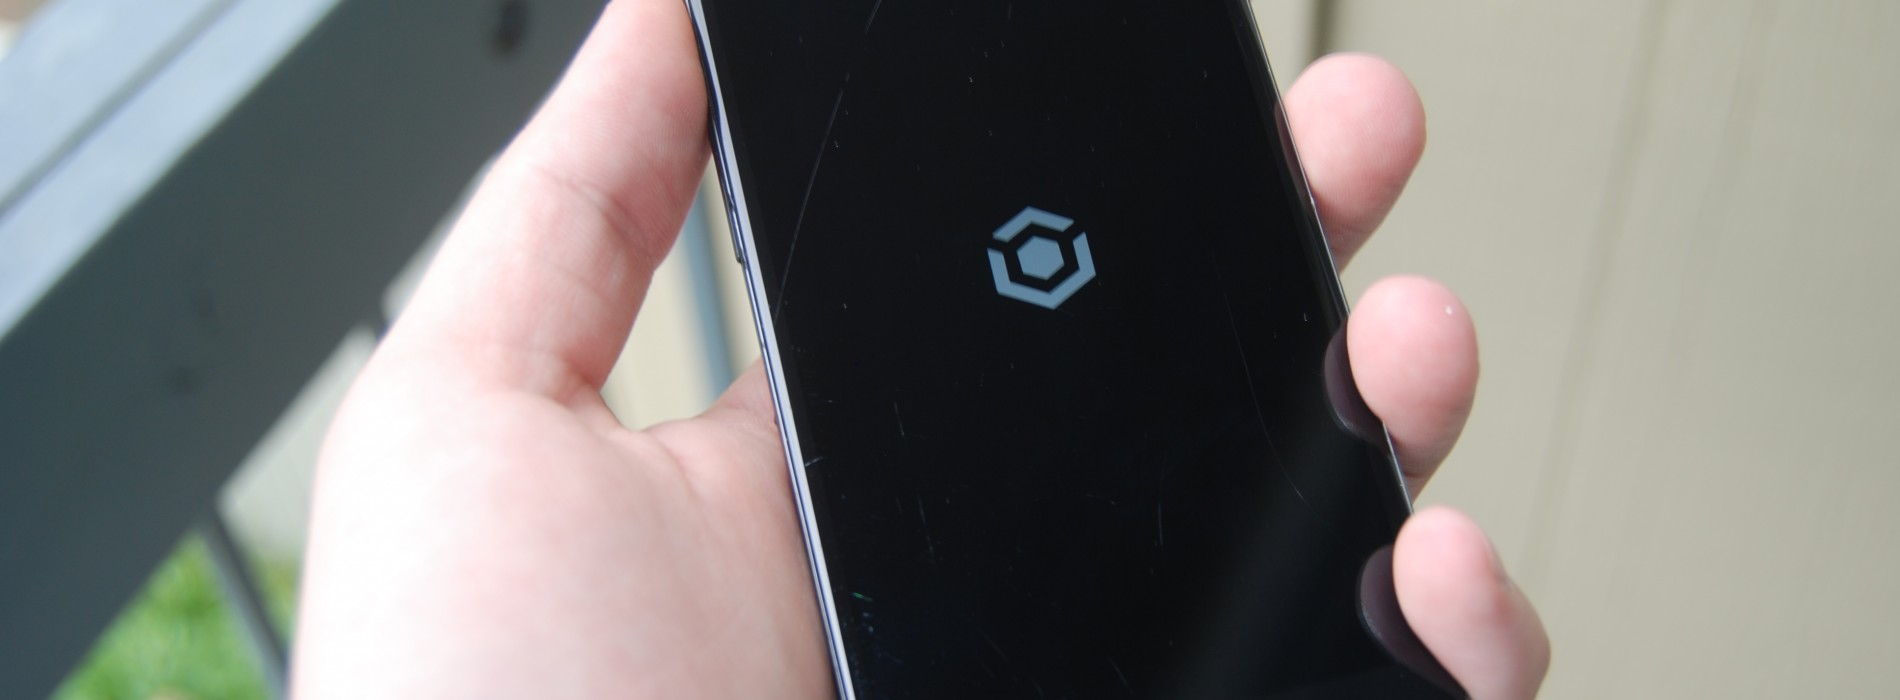 Get features from the OnePlus One and CyanogenMod 11S on your device